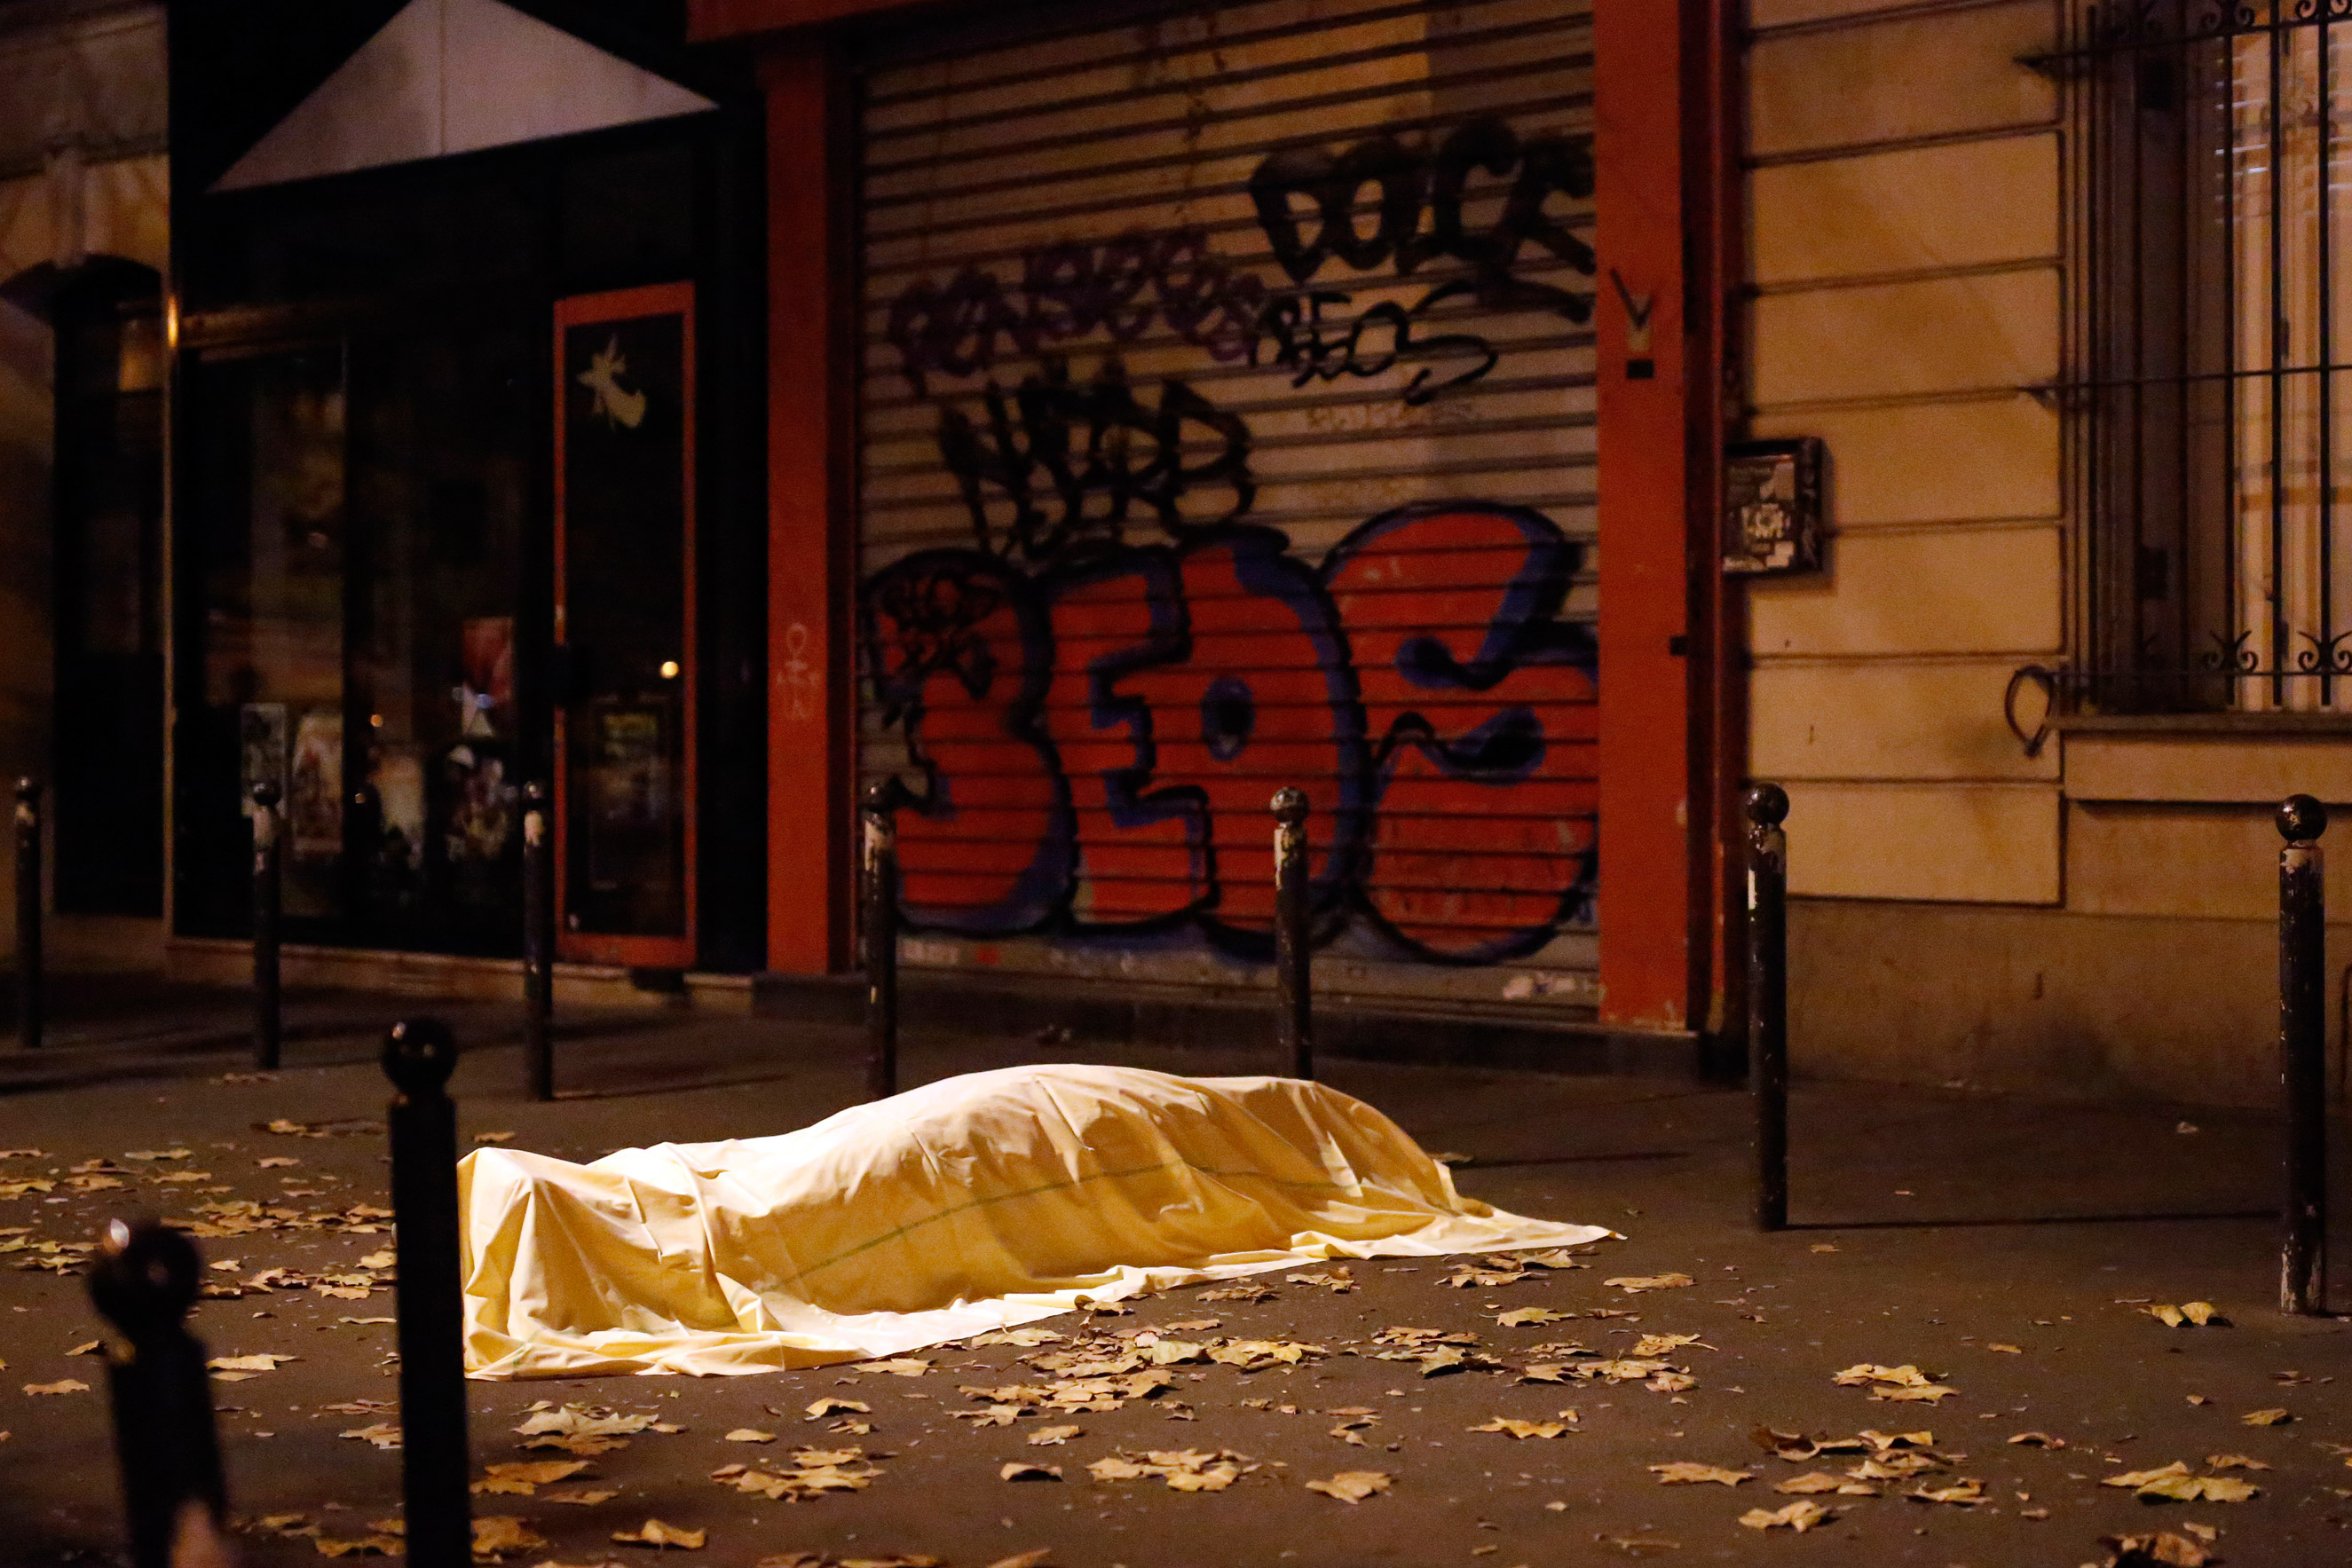 A victim under a blanket lays dead outside the Bataclan theater in Paris on Nov. 13, 2015. Well over 100 people were killed  in a series of shooting and explosions explosions. French President Francois Hollande declared a state of emergency and announced that he was closing the country's borders.